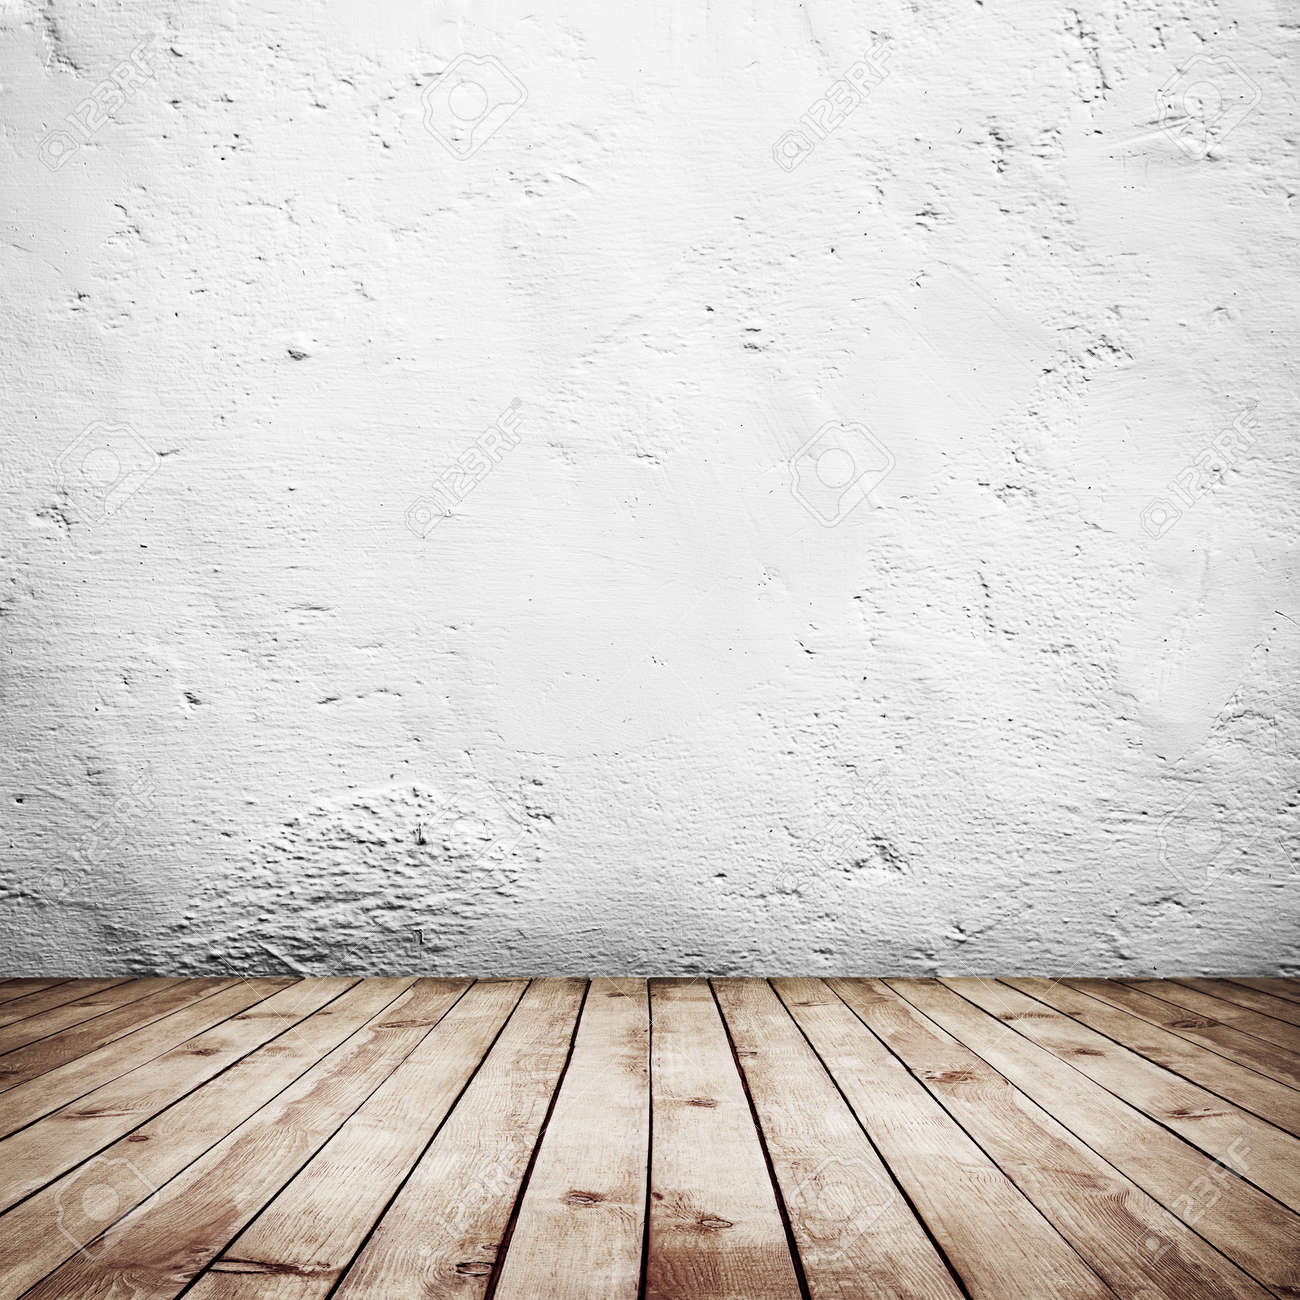 Room Interior Vintage With White Brick Wall And Wood Floor Background Stock  Photo   36912123